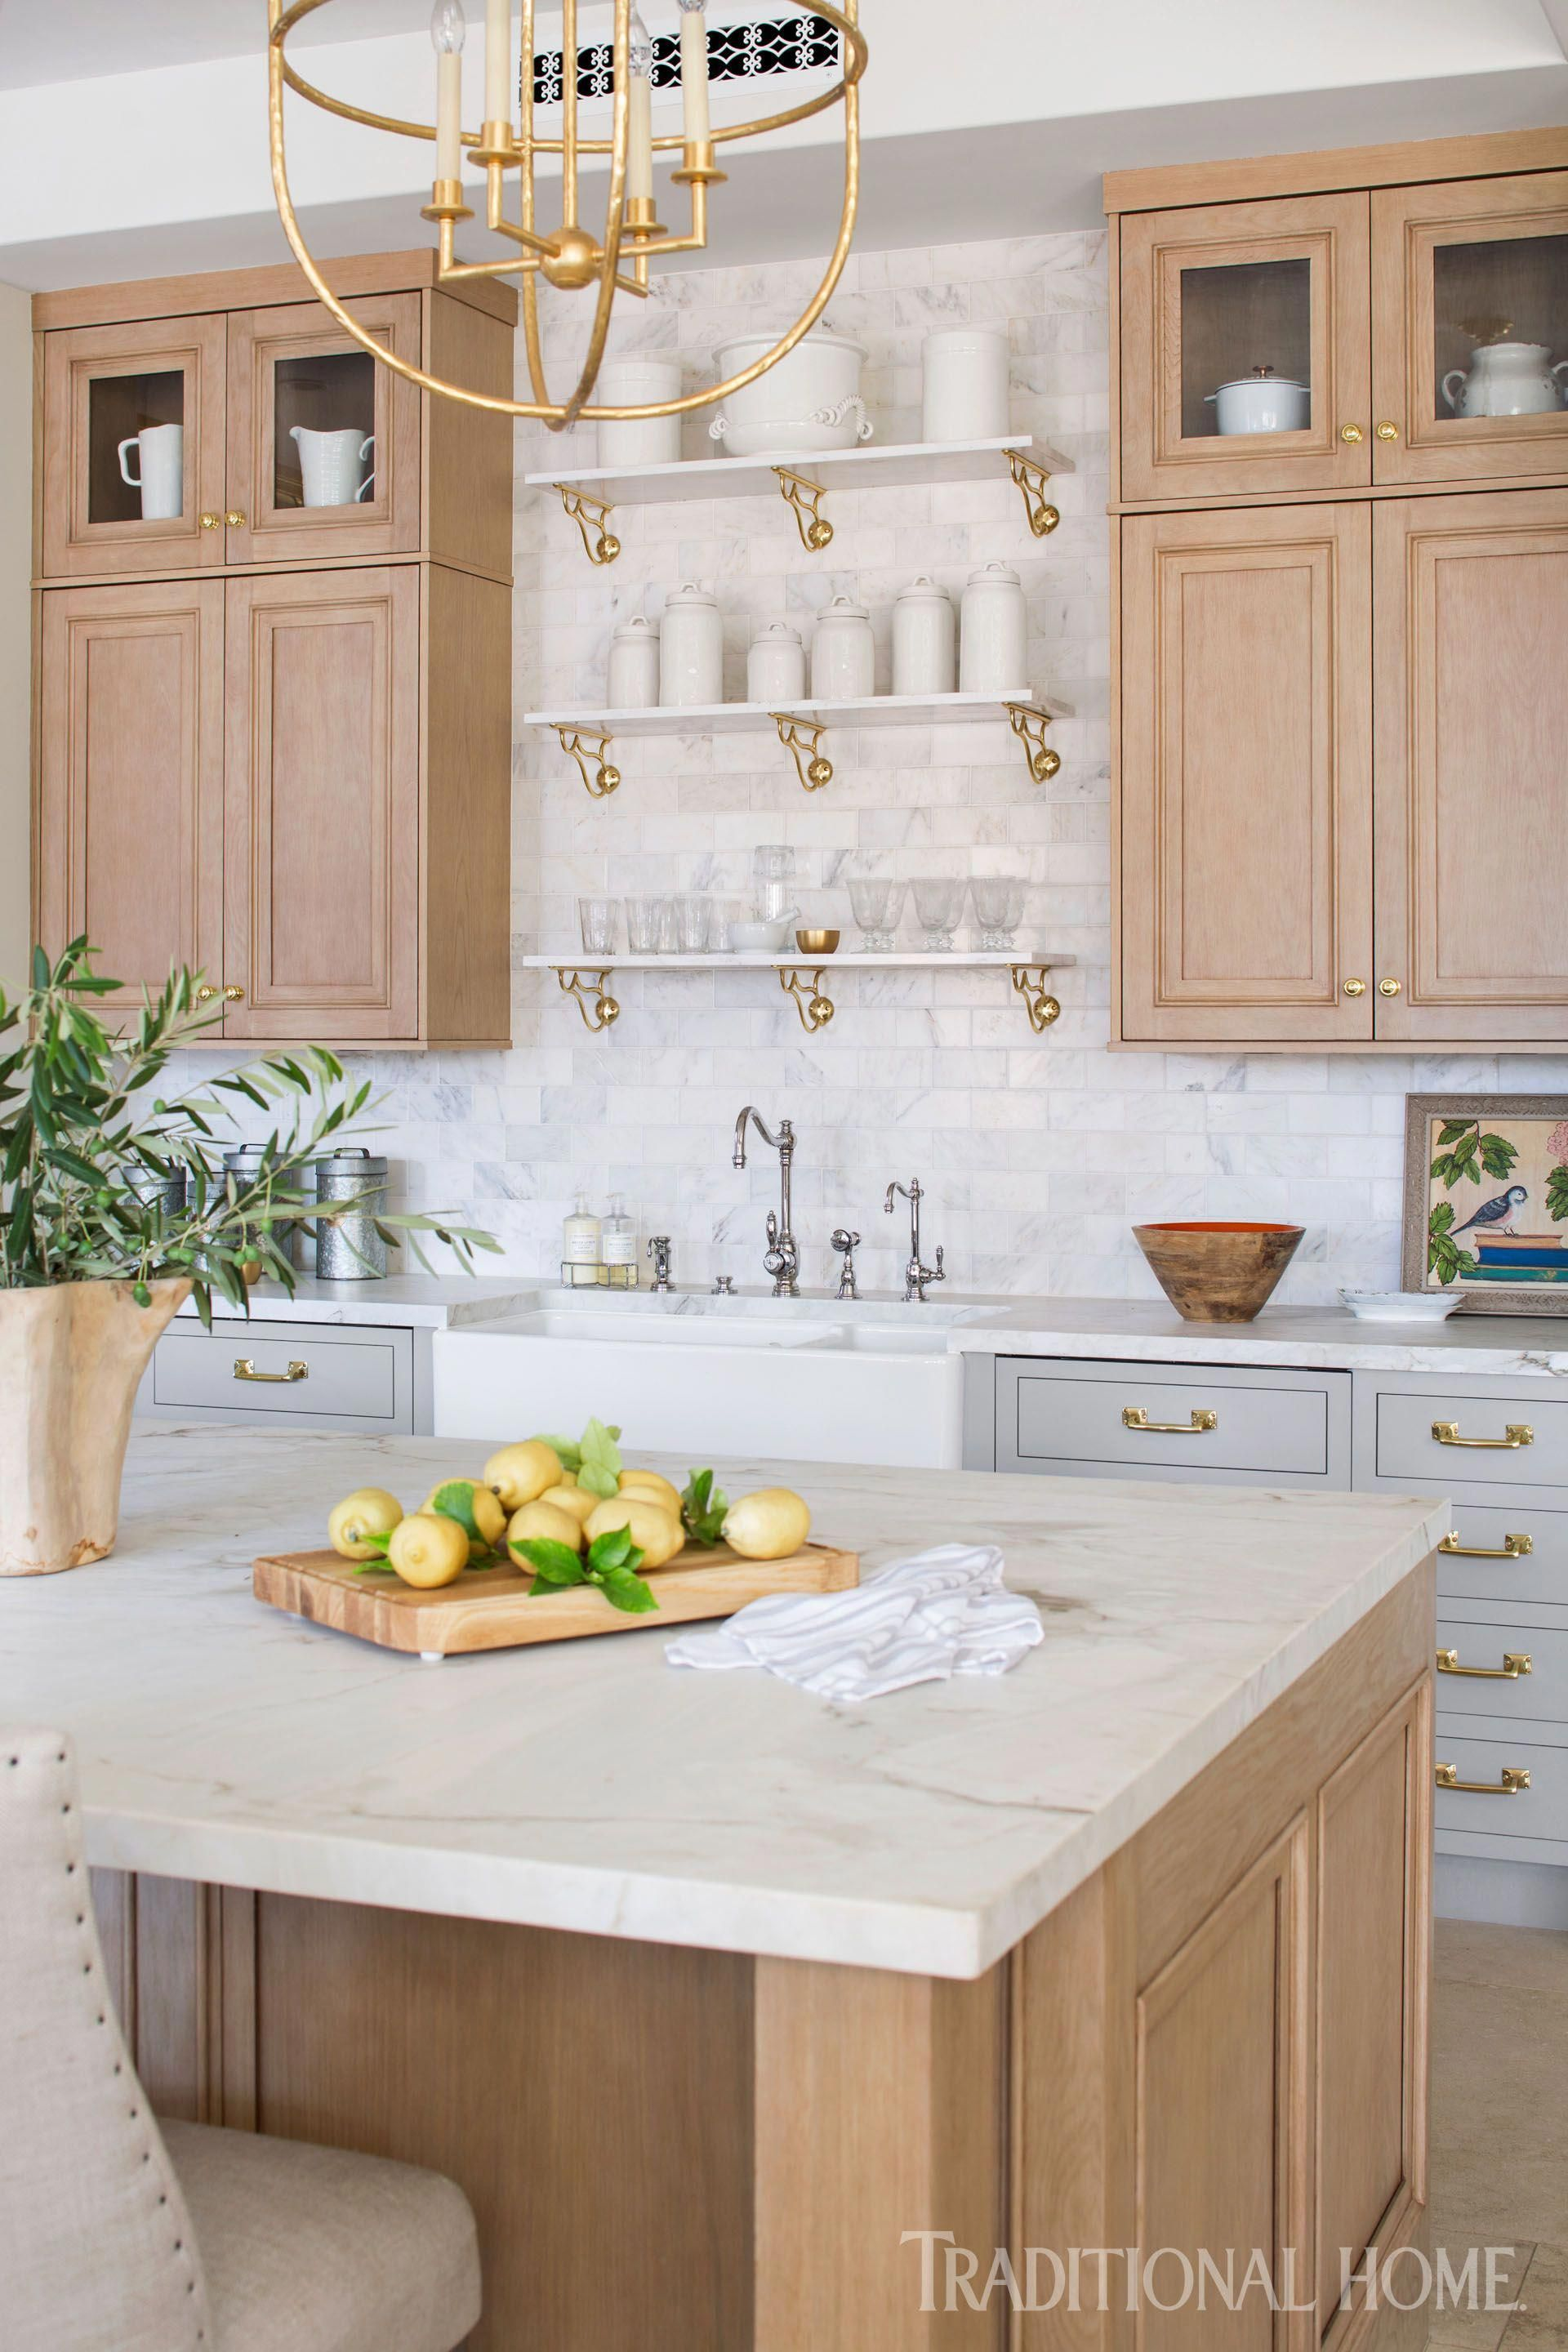 Traditional Kitchen Designs: French Style Inspires A Modern Kitchen